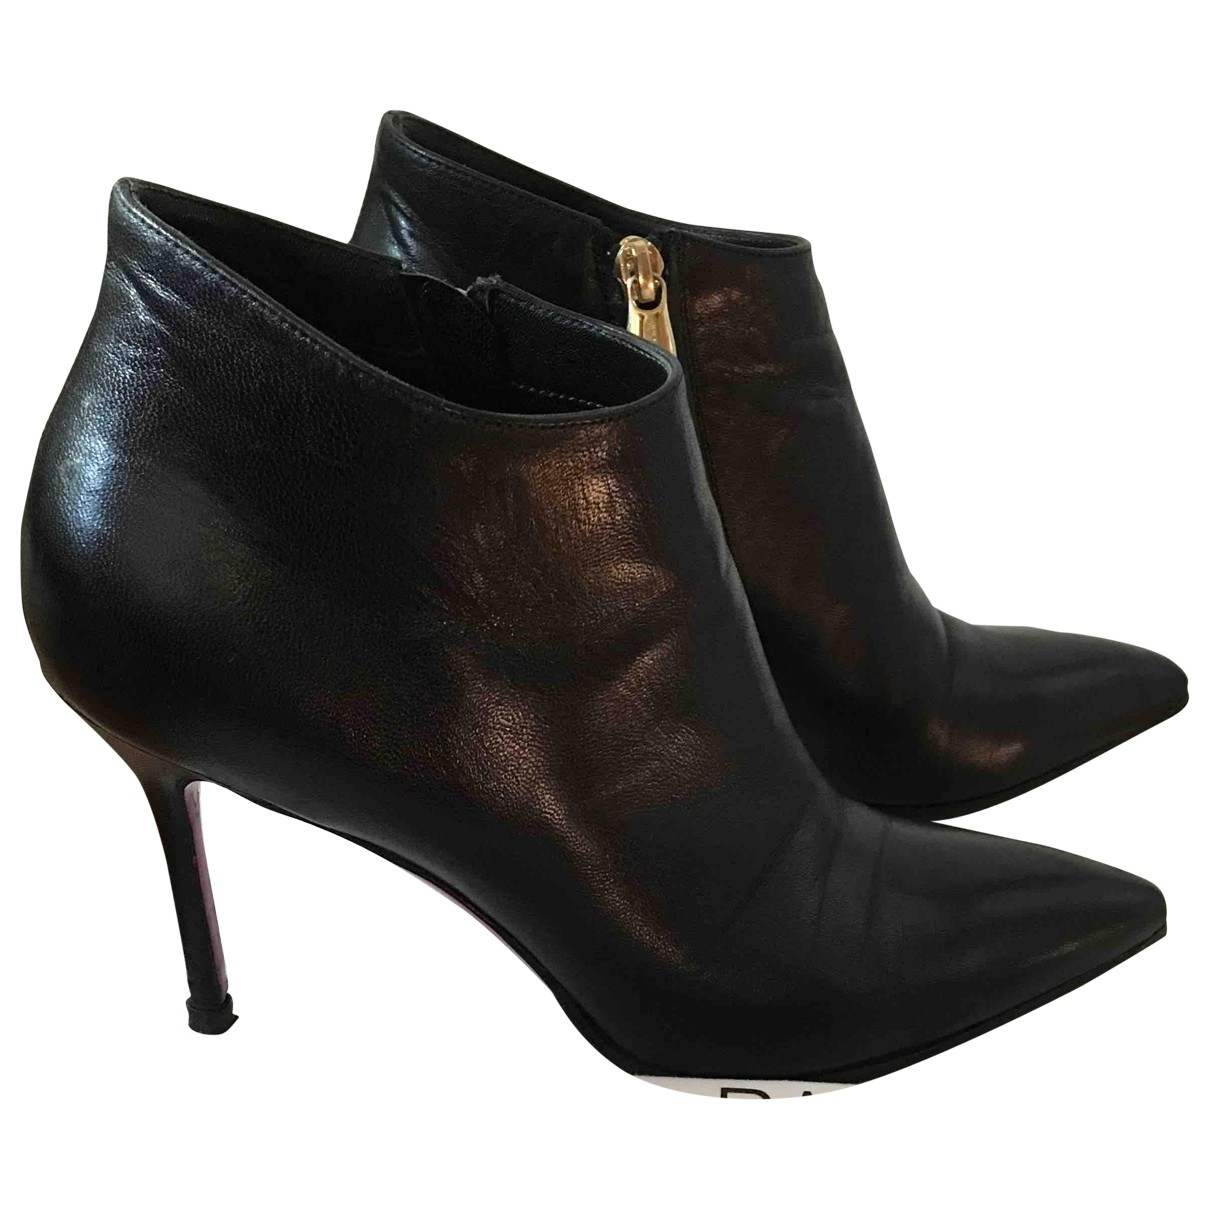 Luciano Padovan \N Black Leather Ankle boots for Women 37 EU